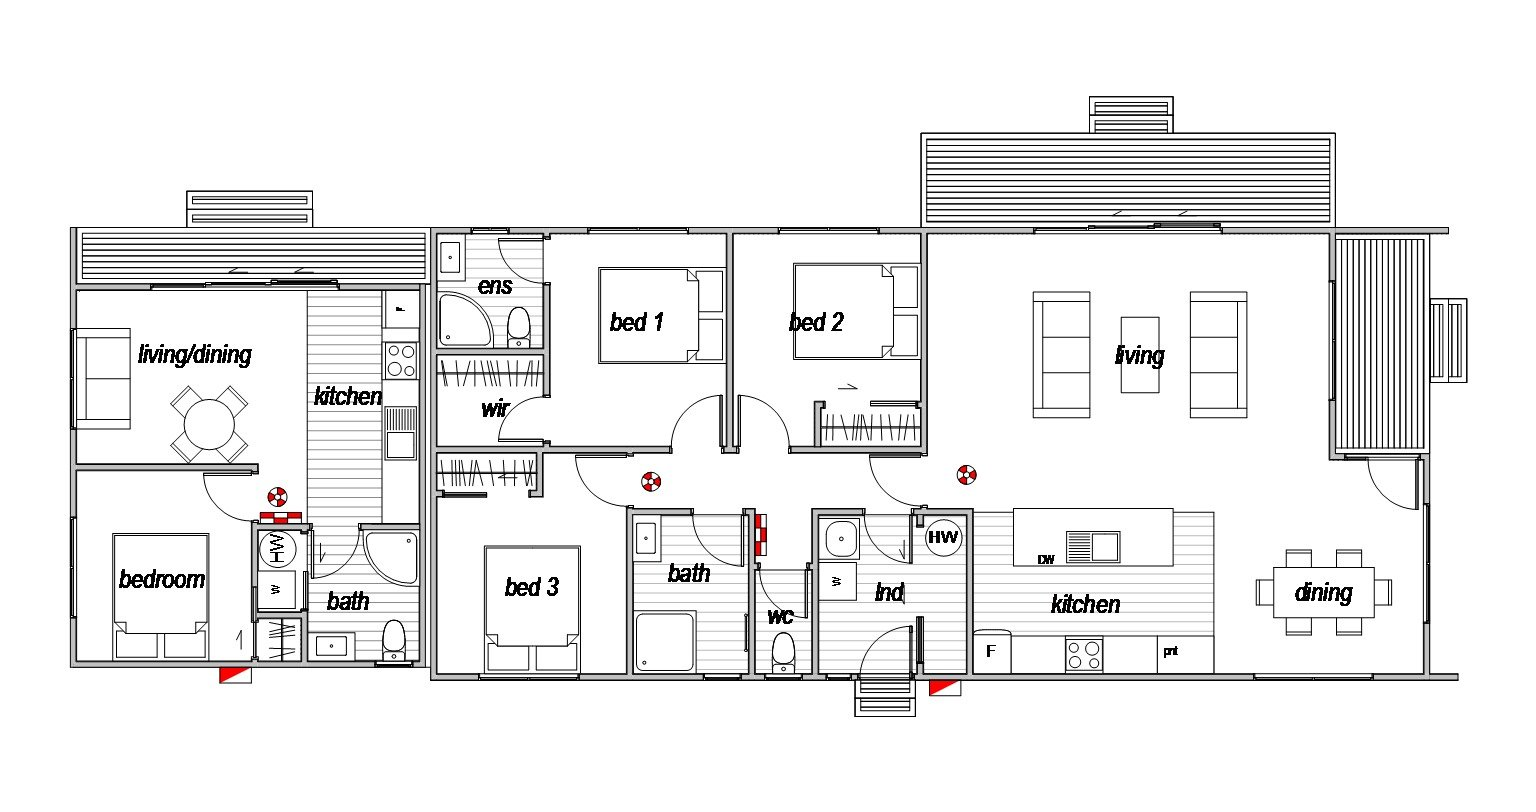 Aviemore 3 bedroom floorplan with 1 bedroom annex